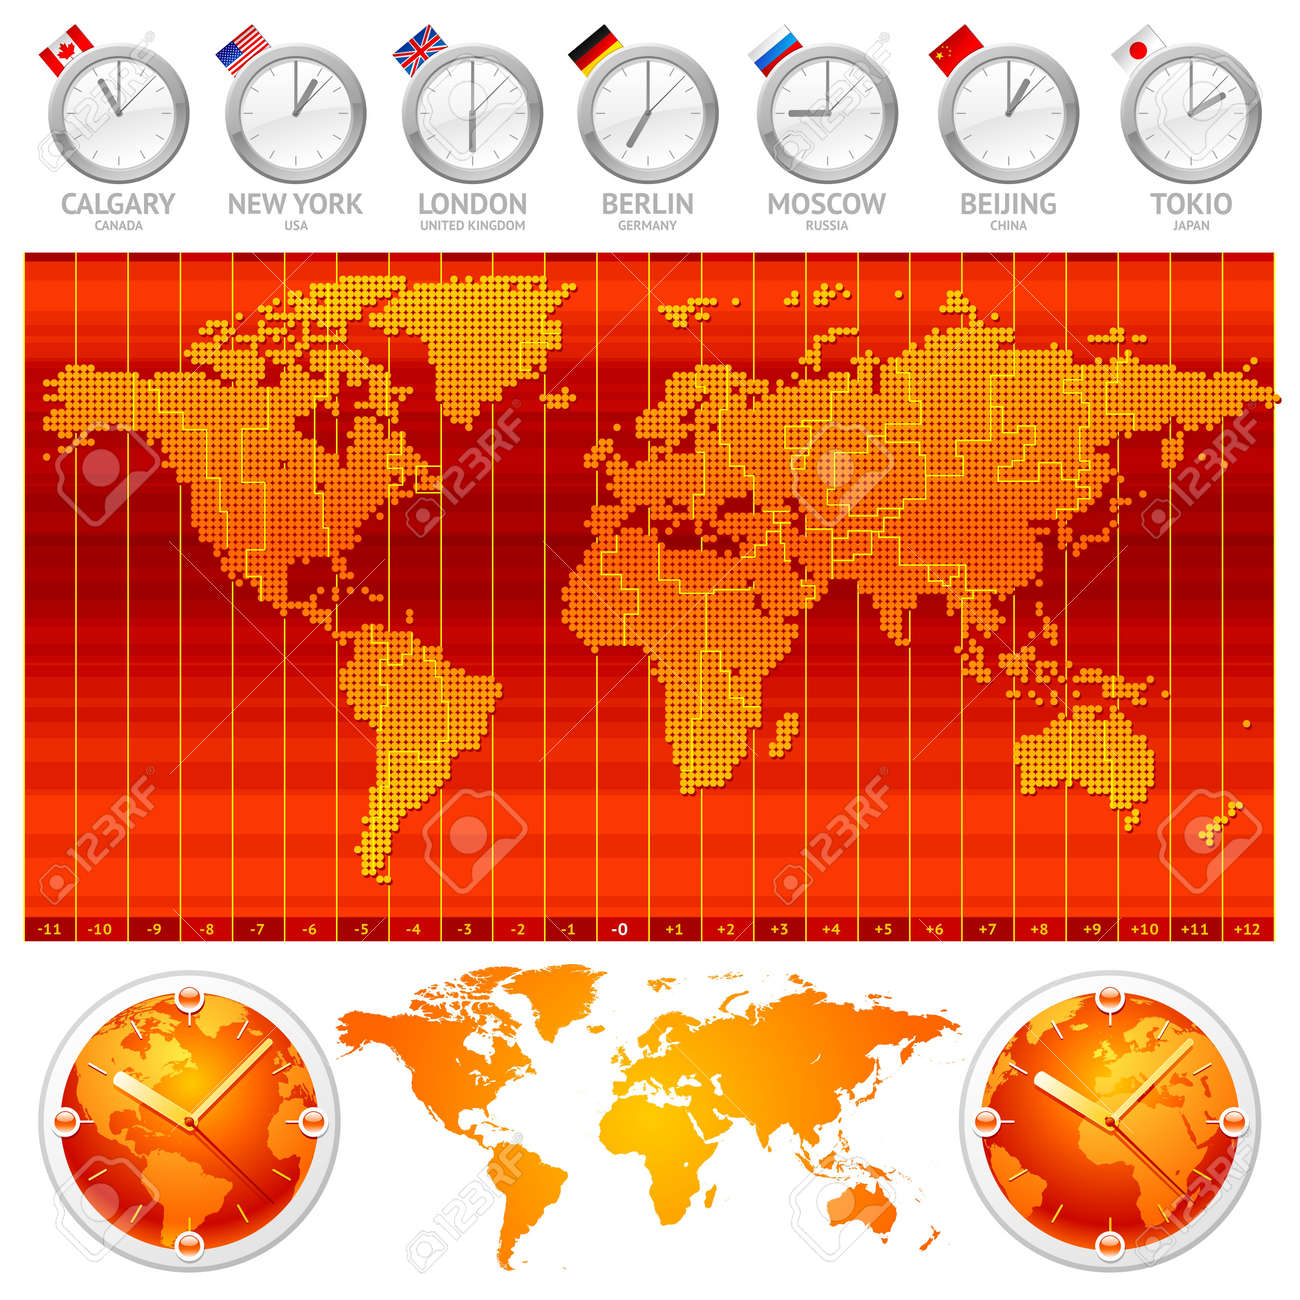 Time Zones And Clocks Vector Illustration Royalty Free Cliparts - Japan map time zones